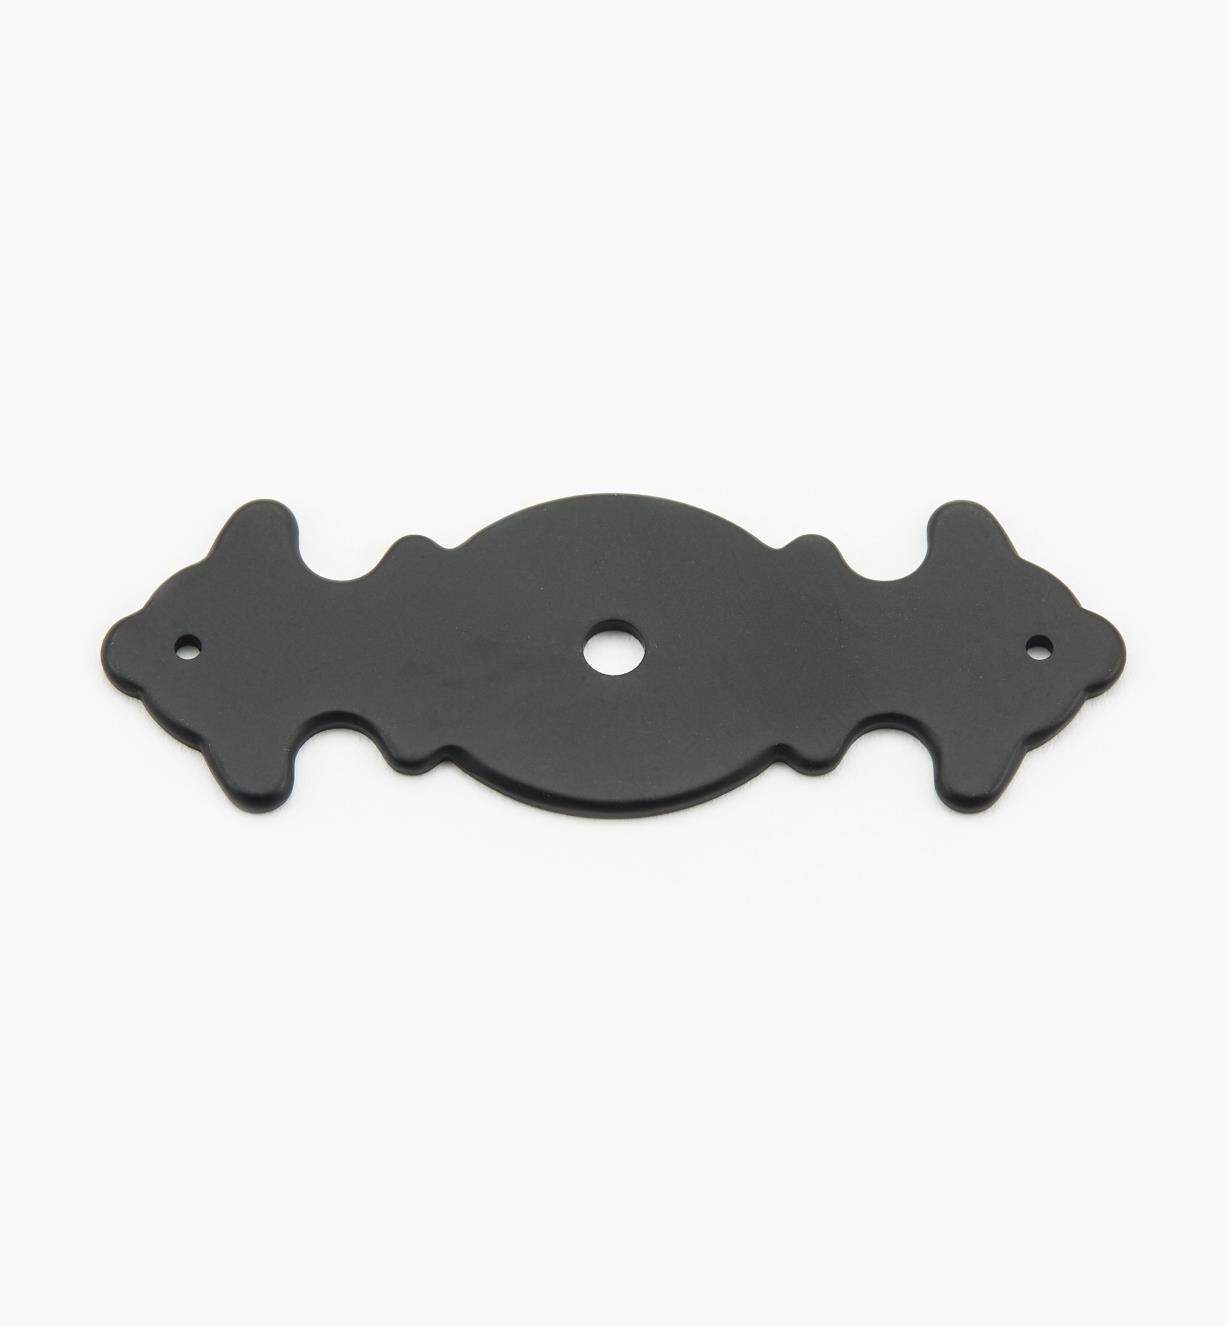 "02W3253 - Oil-Rubbed Bronze Suite - 1 1/8"" x 3 1/4"" Escutcheons"